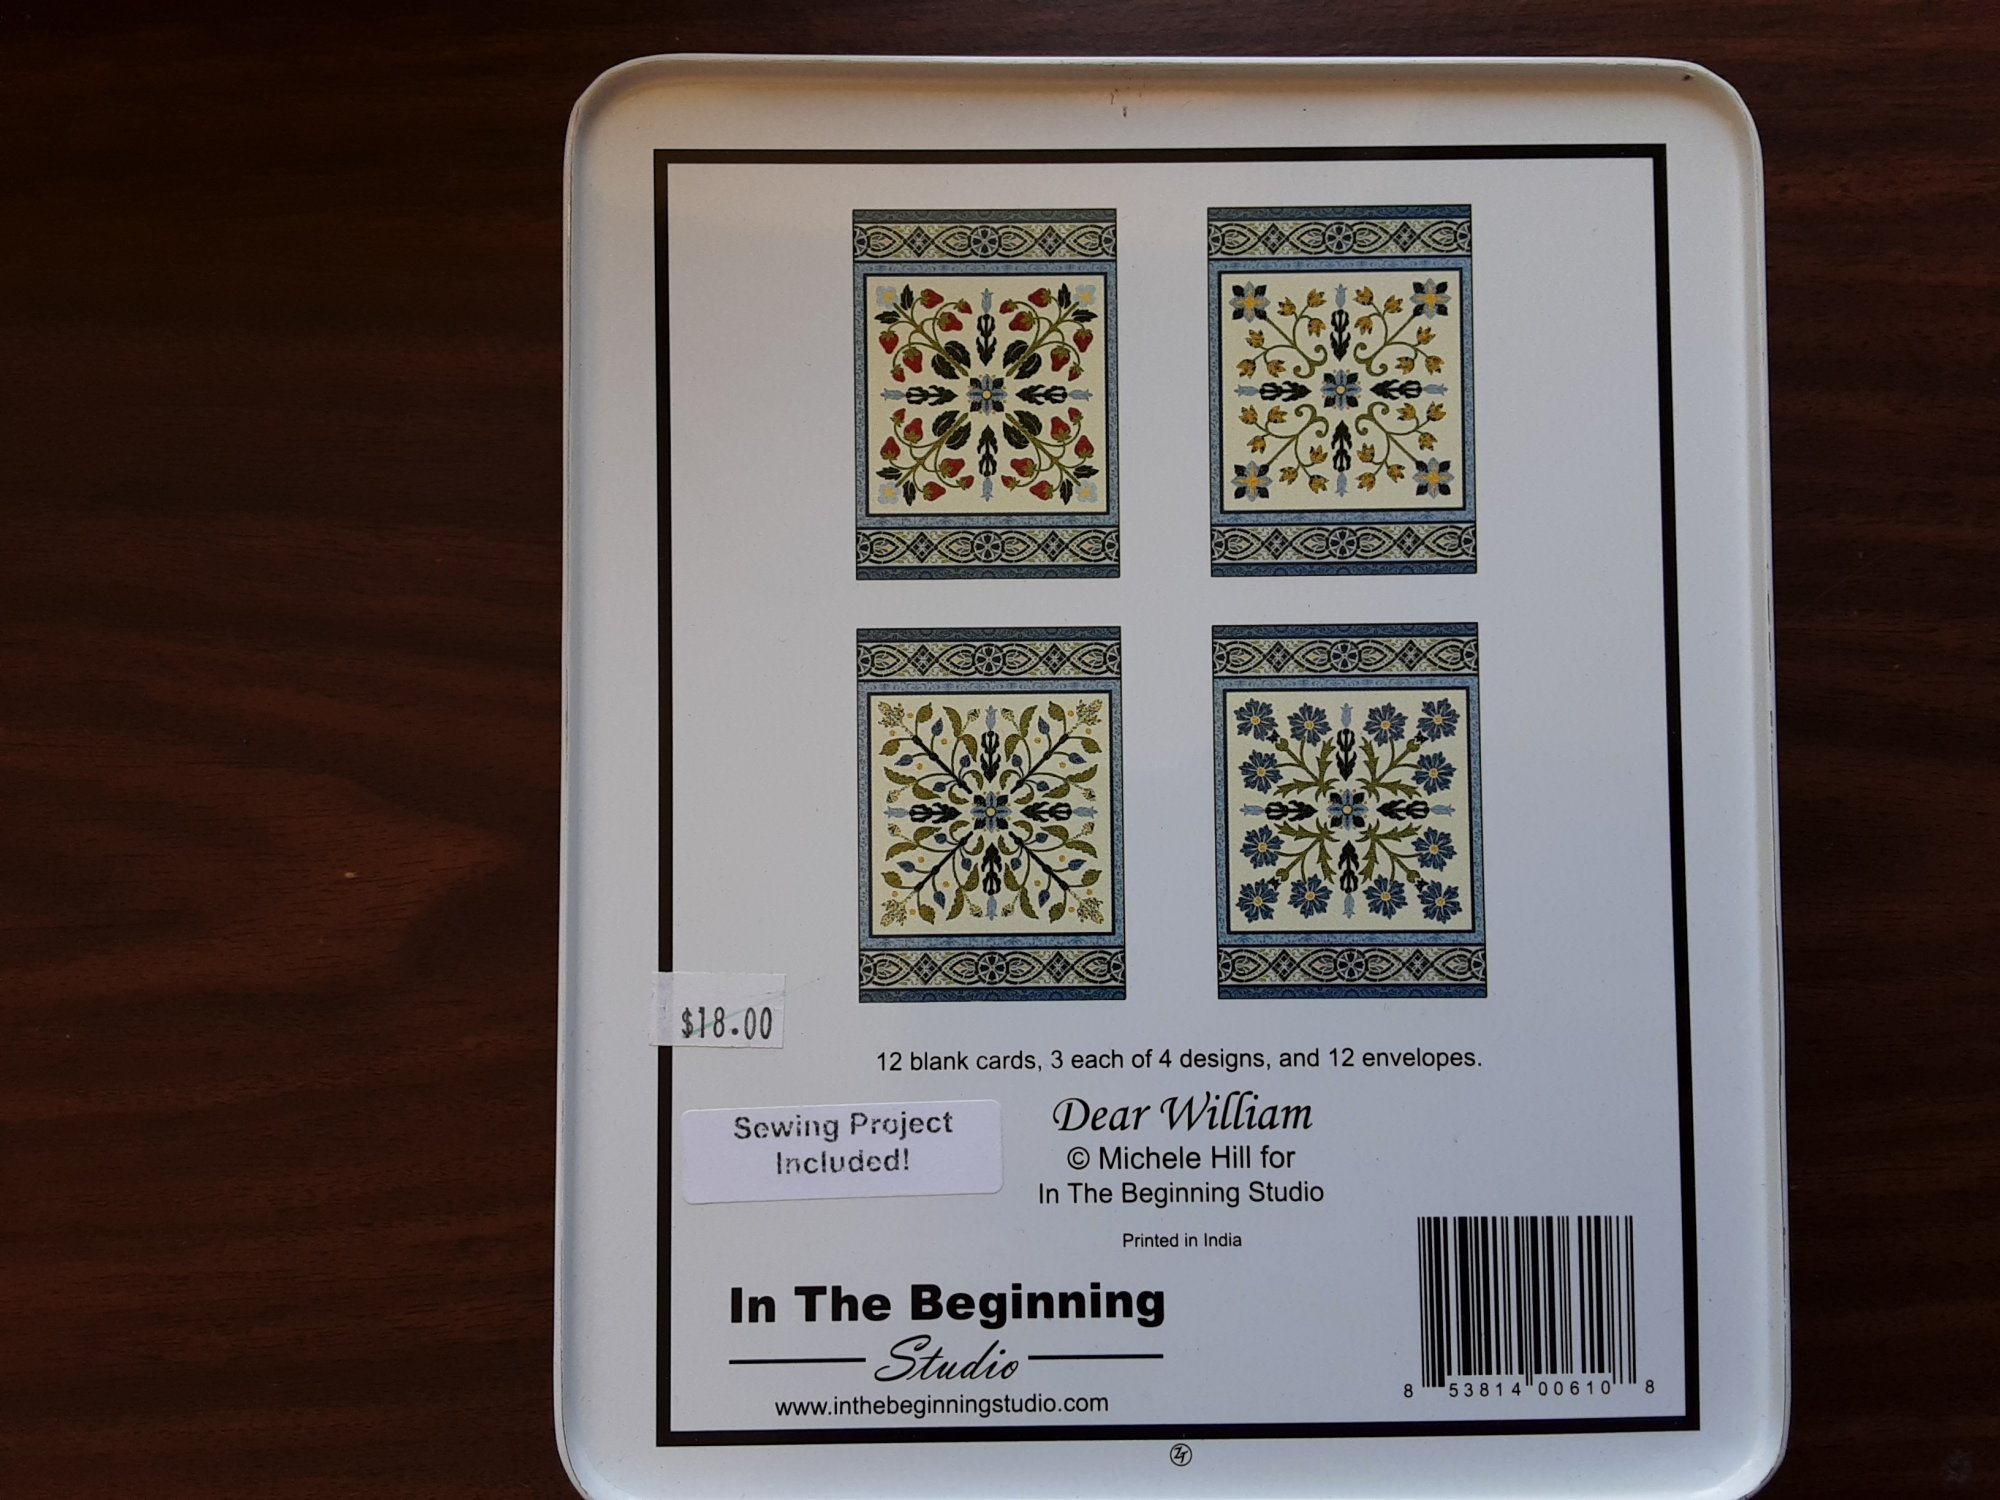 In The Beginning Blank Greeeting Cards Set (12 Cards & Envelopes)